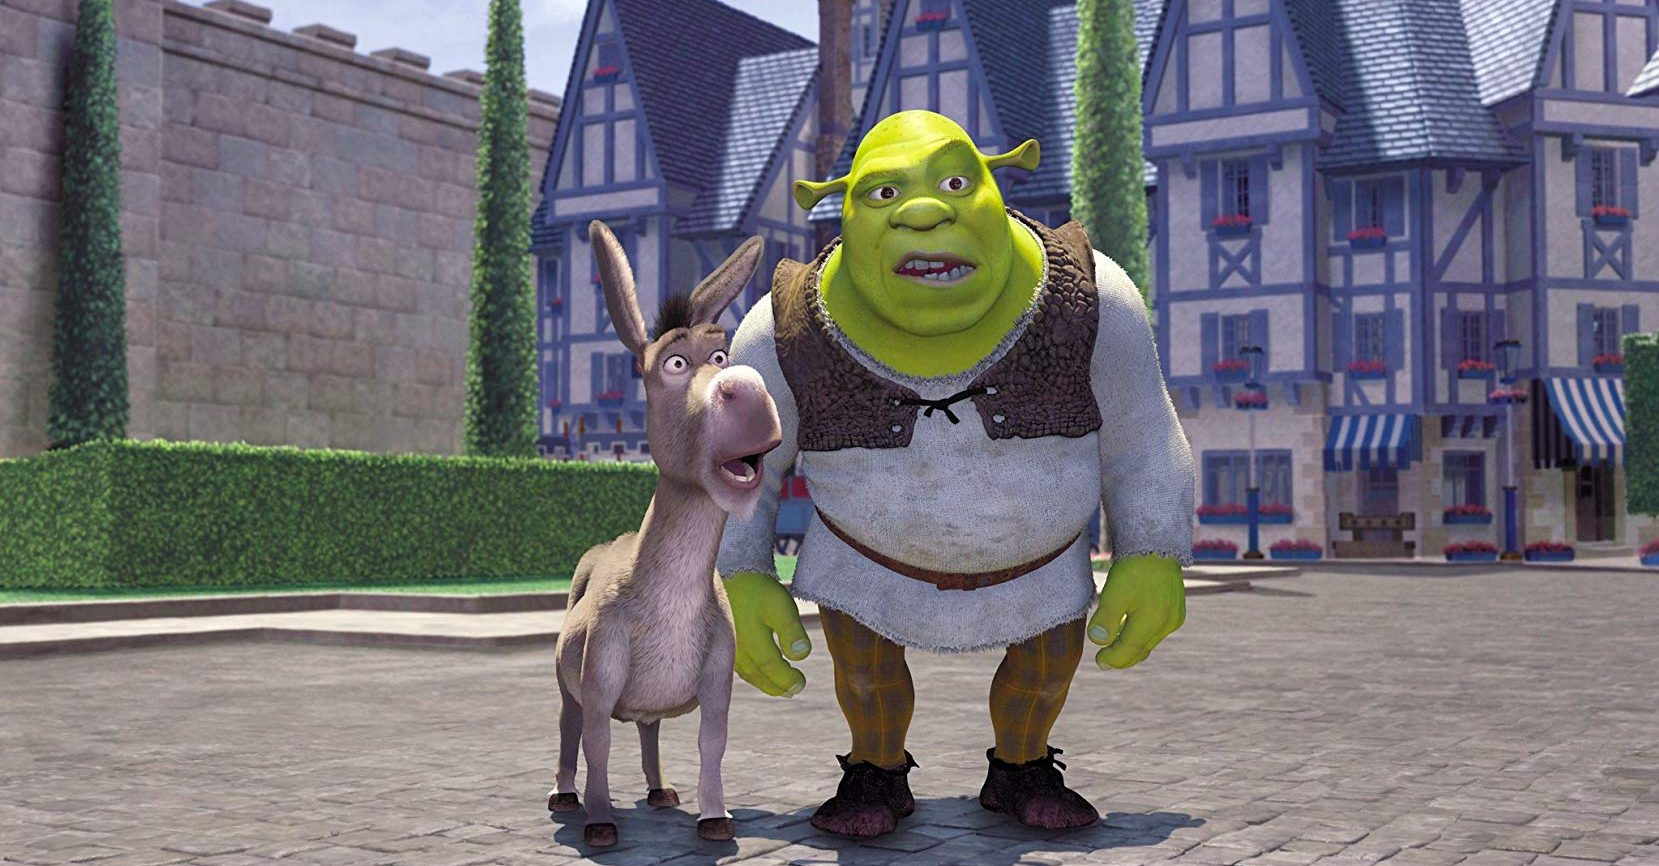 Shrek 5 Reboot and New Story Details